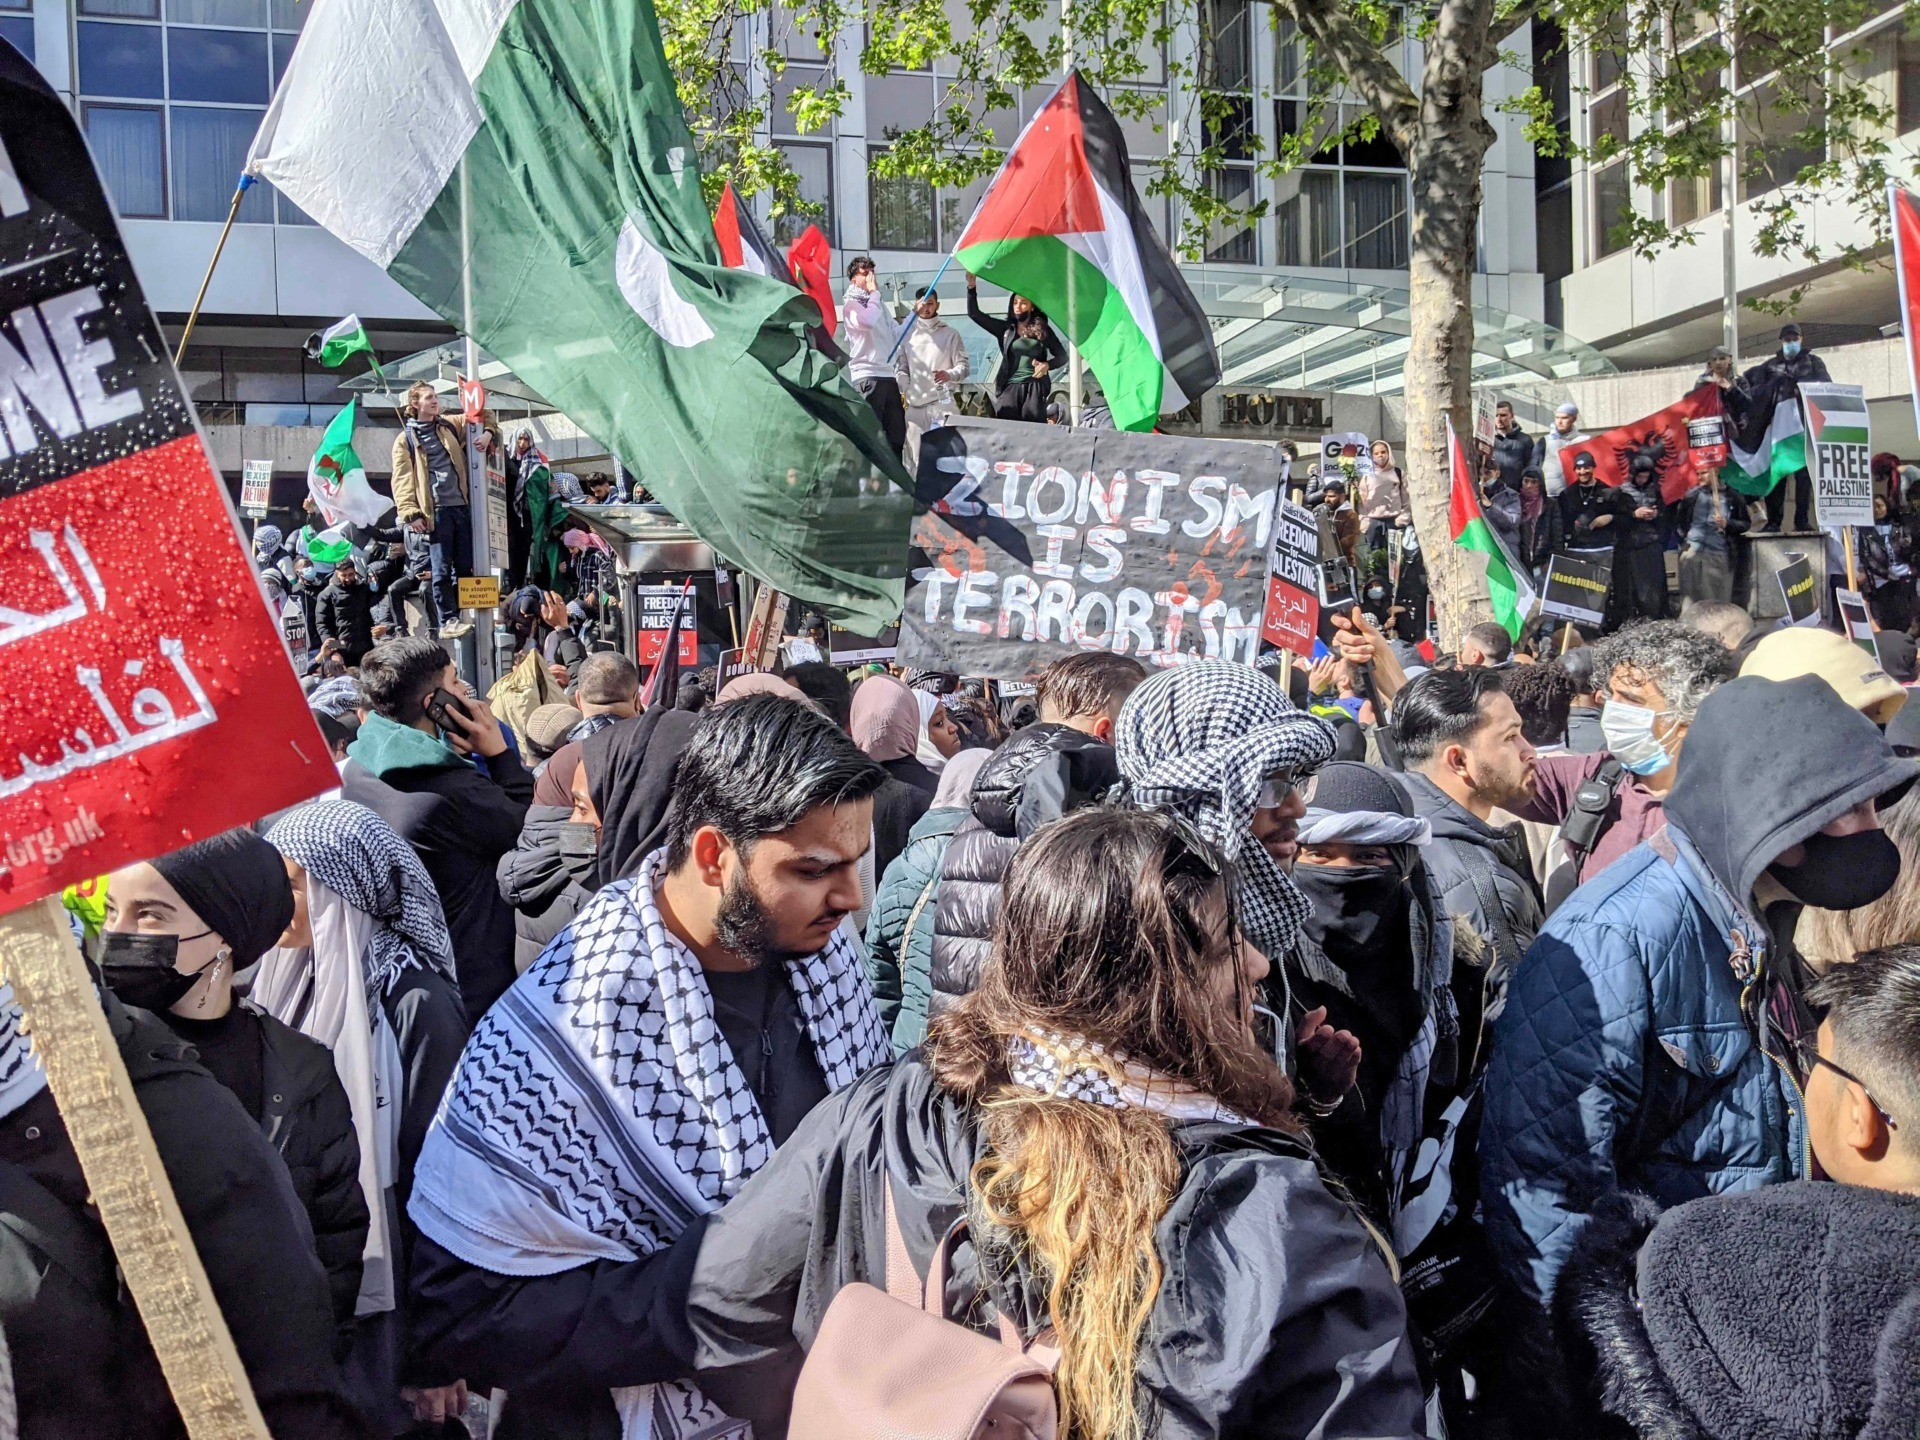 """A protester is seen carrying a placard reading """"Zionism is Terrorism"""", at an anti-Israel protest in London. May 15th, 2021. Kurt Zindulka, Breitbart News"""